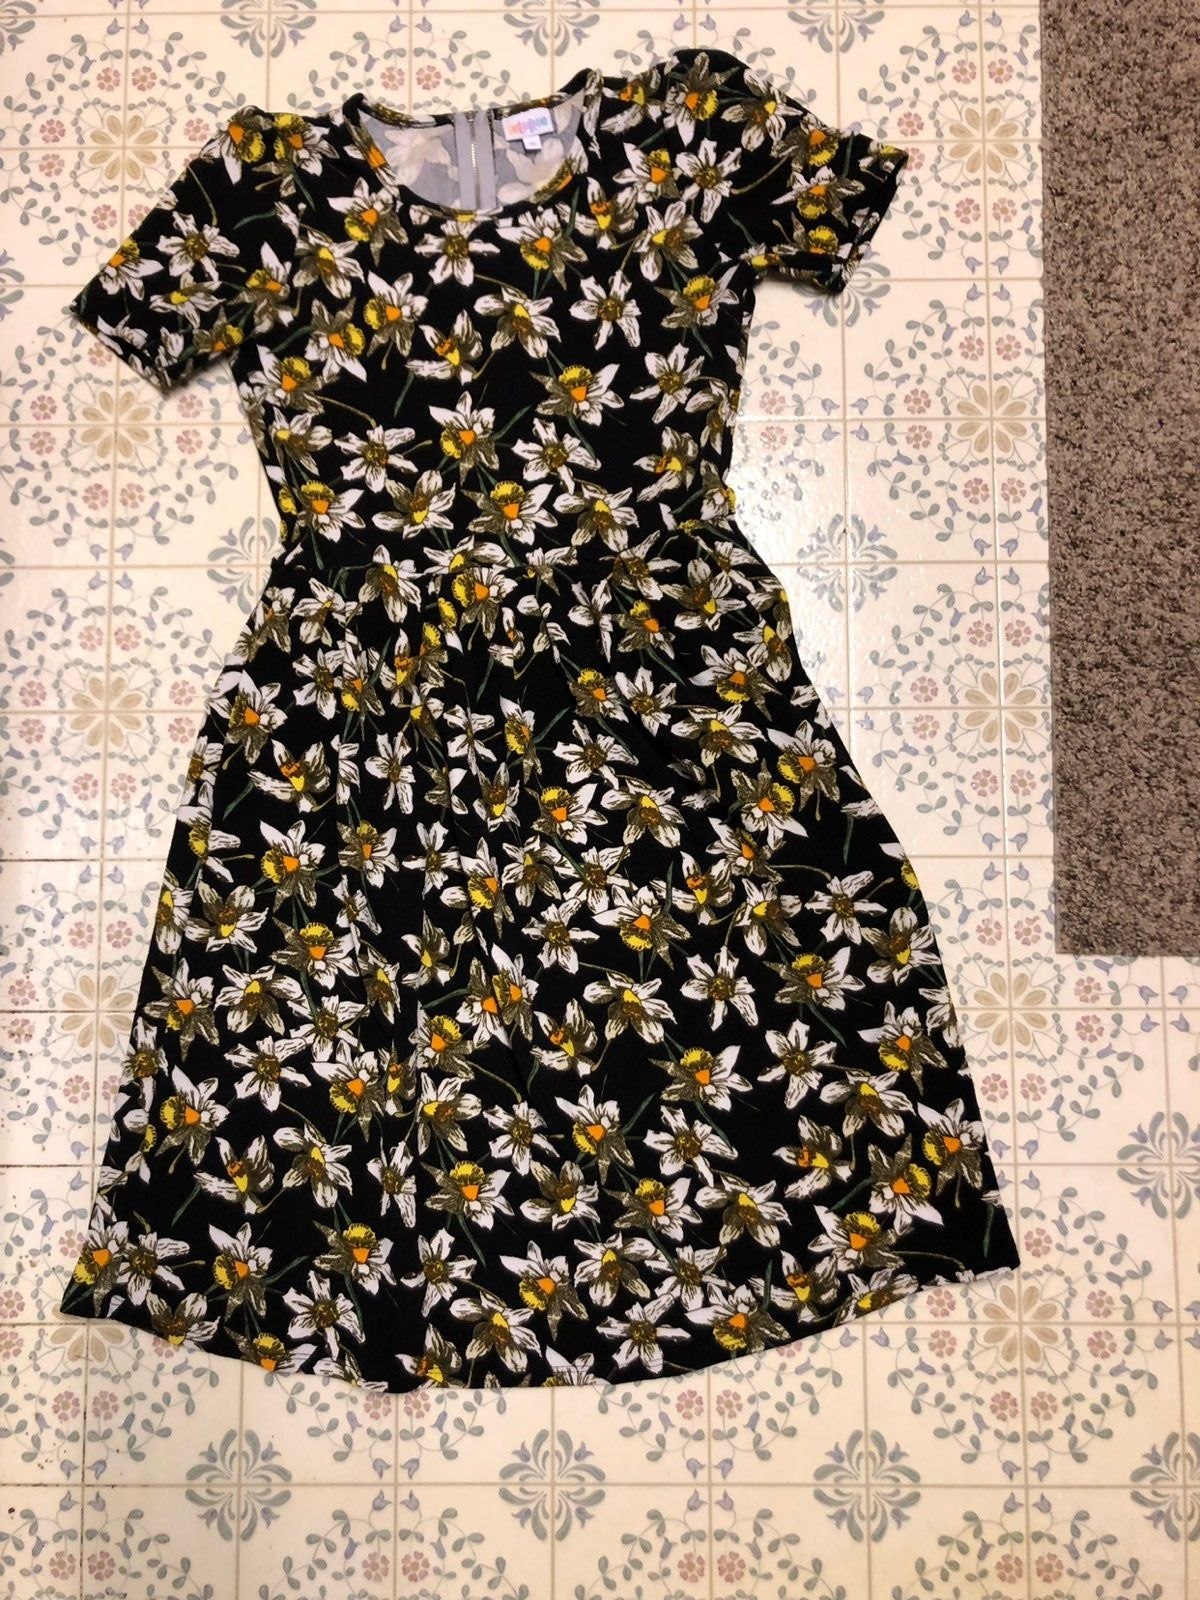 Black Dress Has Pockets Zips Up The Back White And Yellow Flowers Like New Without Tags Dresses Dresses With Sleeves Black Dress [ 1600 x 1200 Pixel ]